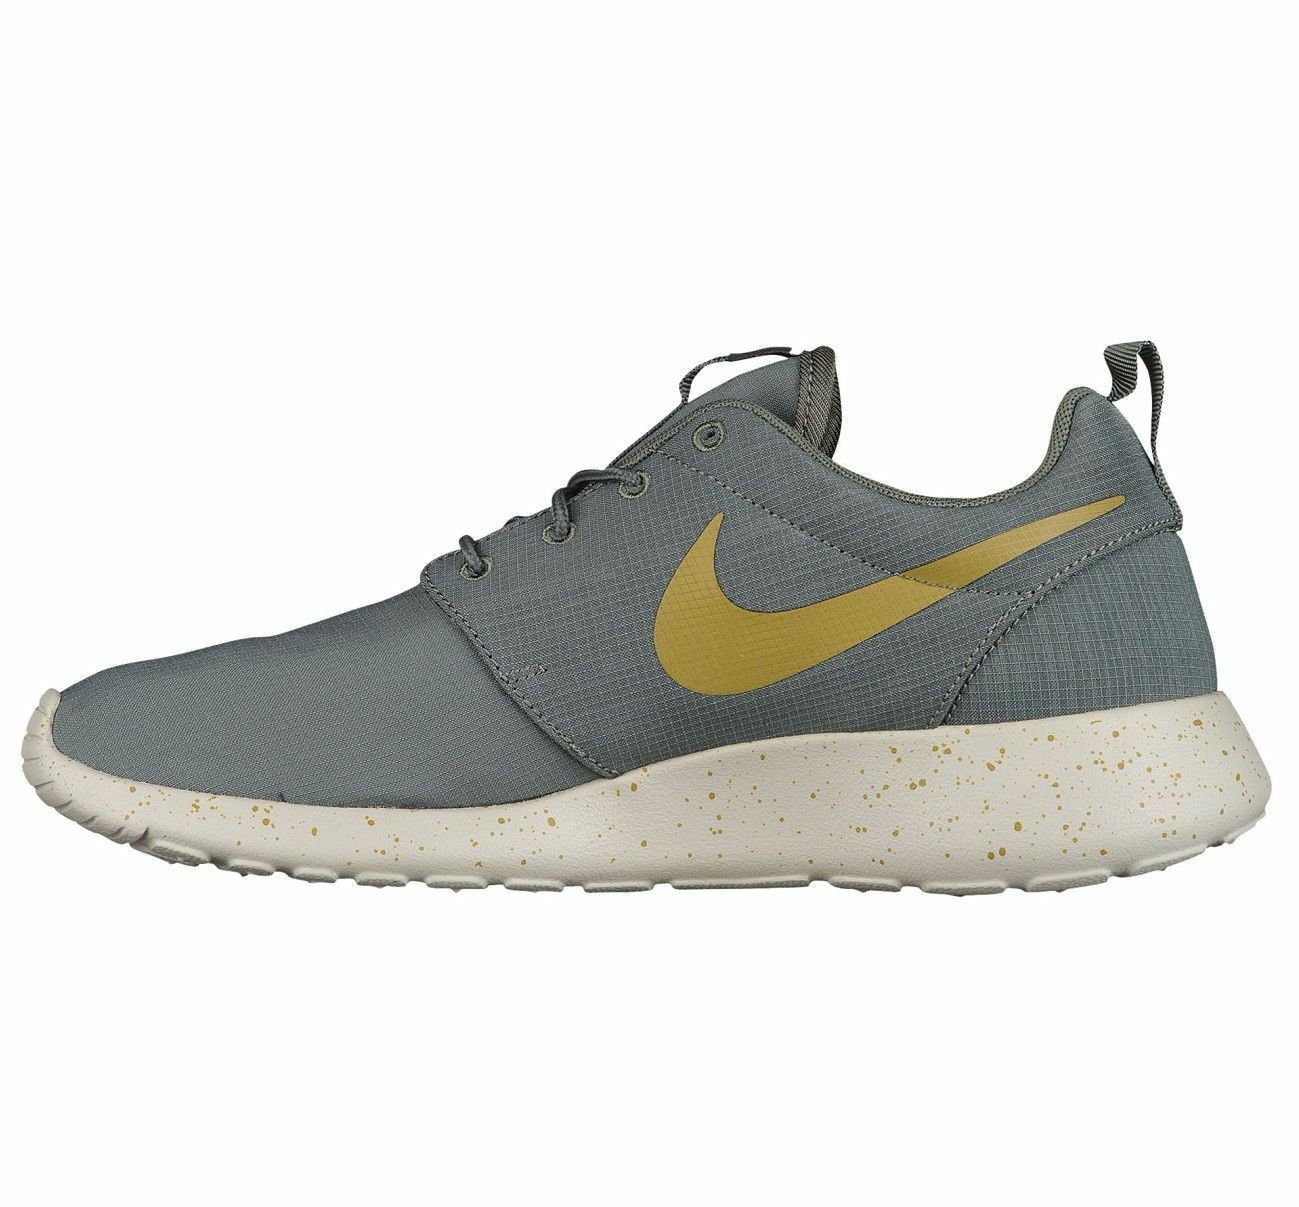 Nike Roshe One SE Mens 844687-008 River Rock Desert Moss Running Shoes Size 12